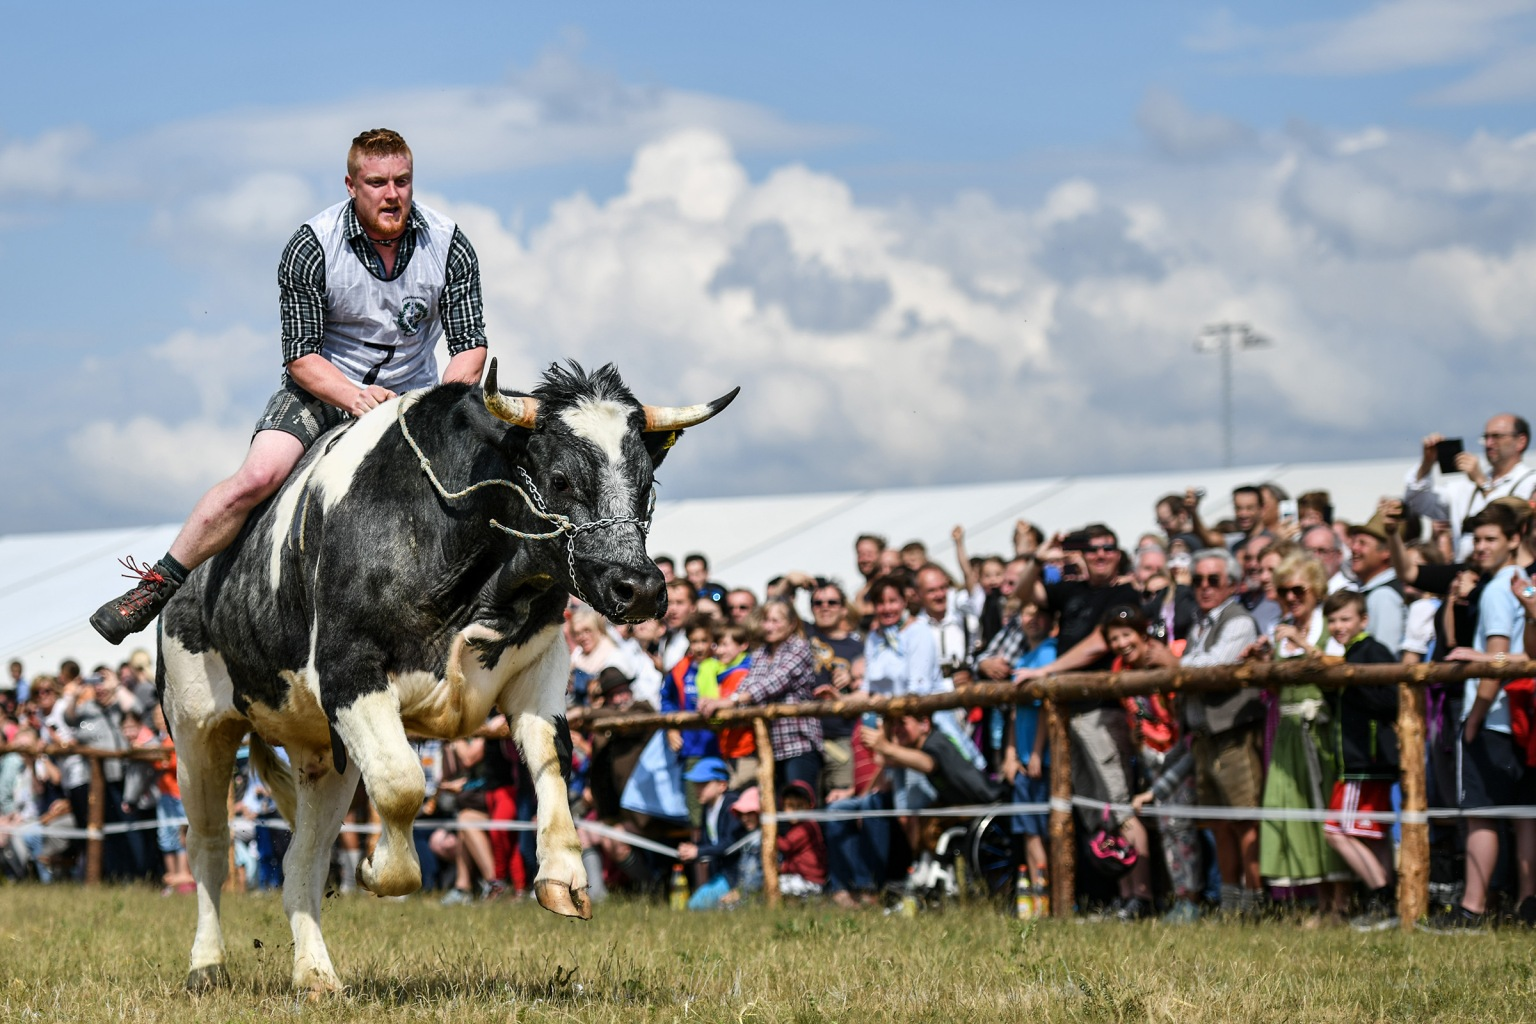 A rider clings to his ox during a race on Ascension in Bavaria on May 10 in Taufkirchen, Germany. Eight oxen and four camels took part in the 100-meter-long race, an animal combo that is reportedly a first in Bavarian history after organizers had trouble finding enough male oxen trained for racing.  Philipp Guelland/Getty Images